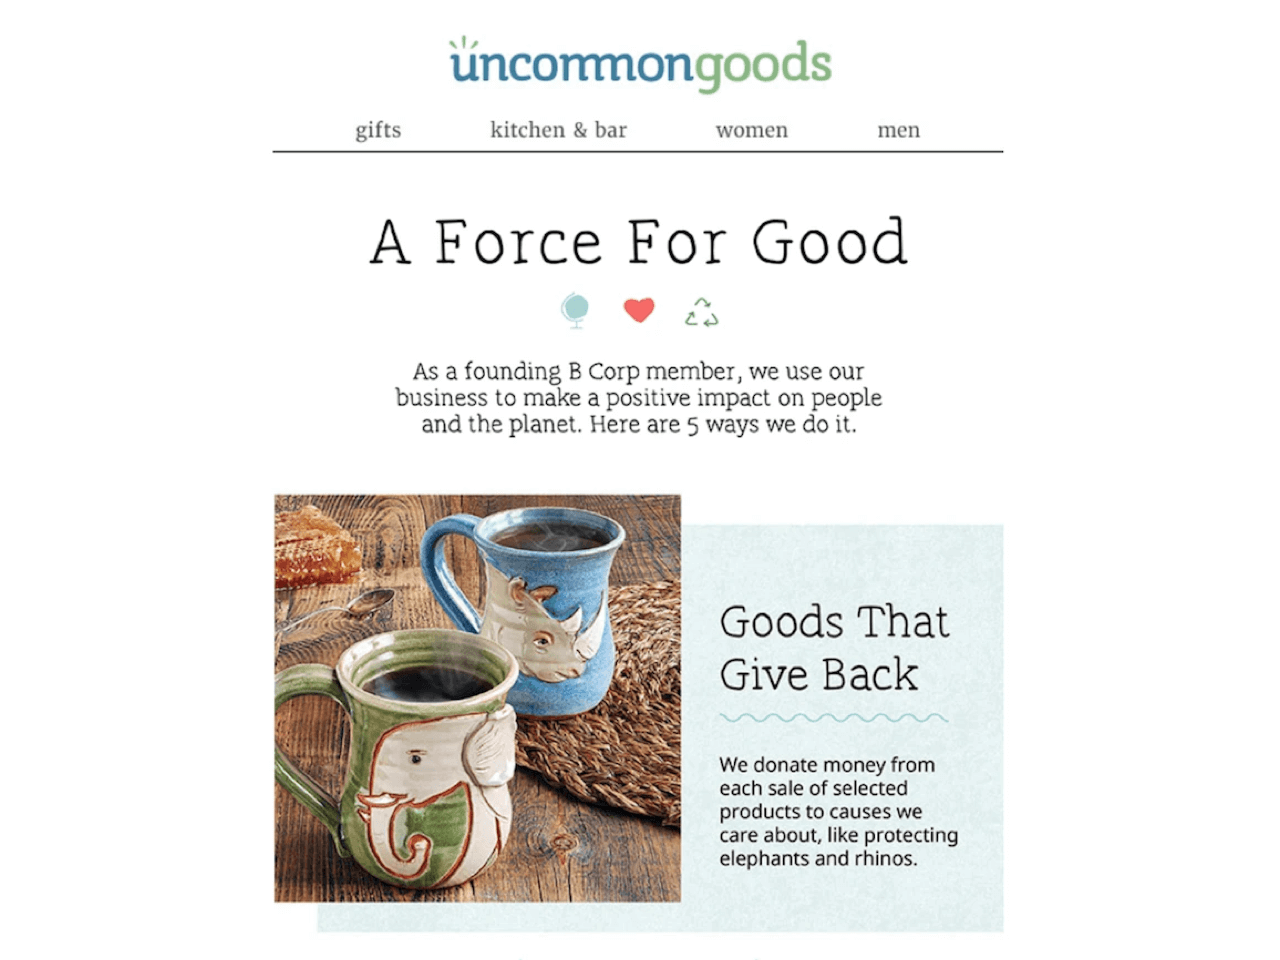 Uncommon goods have included coupon marketing in their automated email campaigns